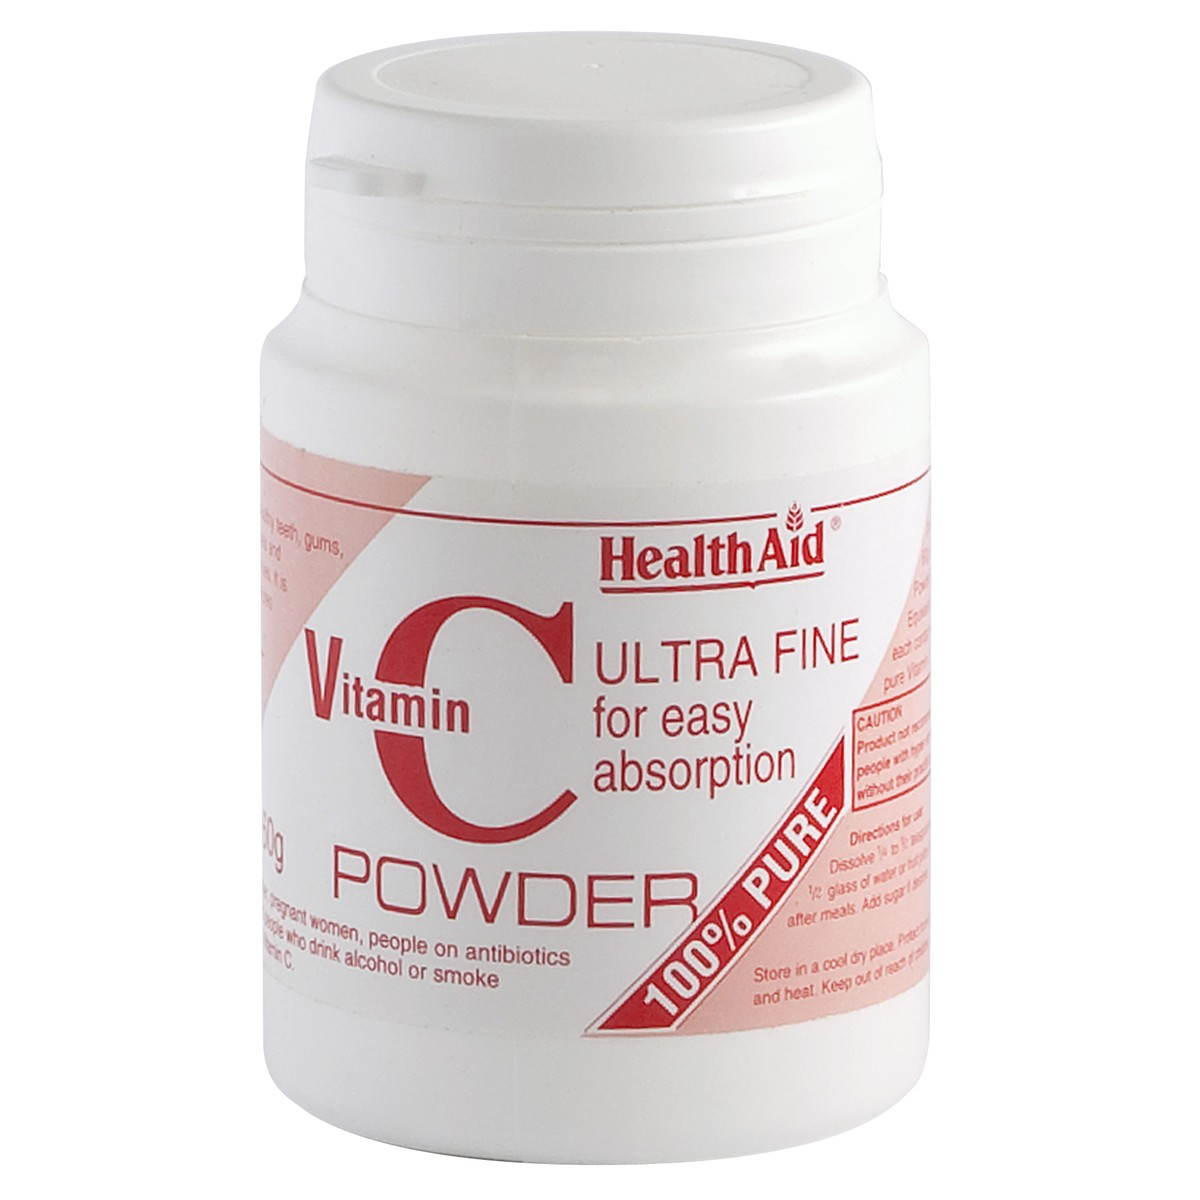 HealthAid Vitamin C 100% Pure Ultrafine Powder